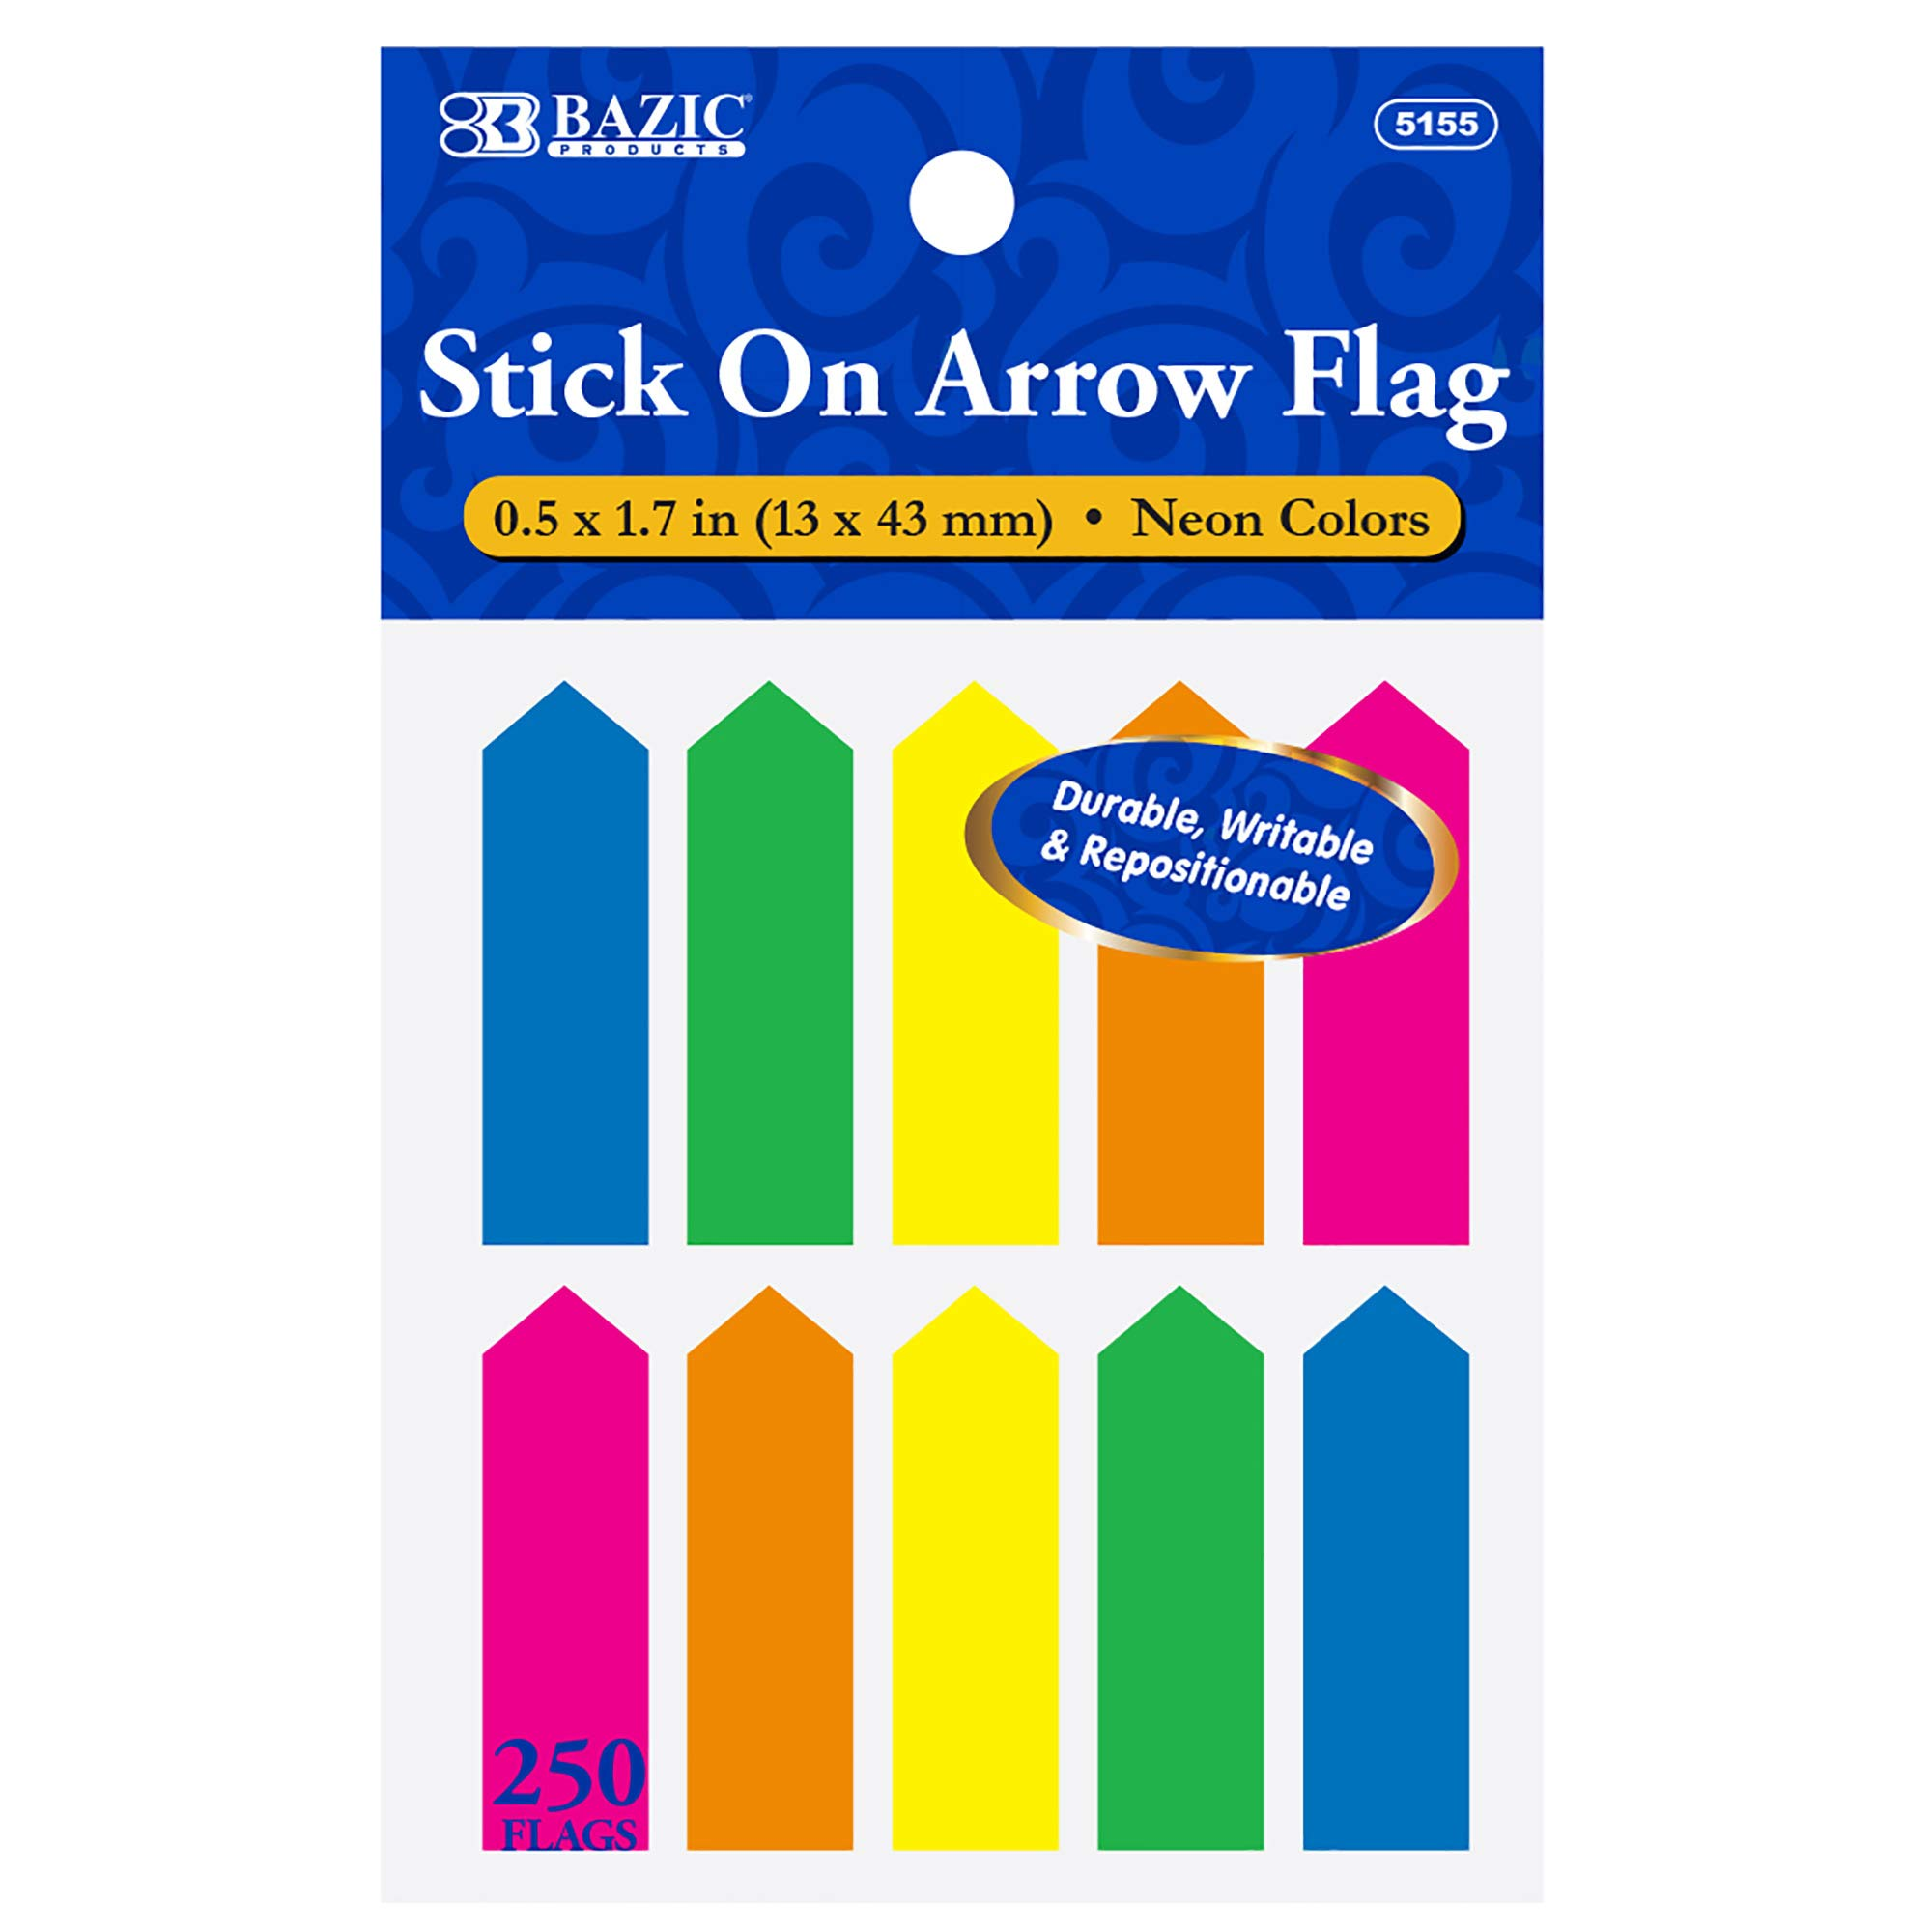 BAZIC 25 Ct. 0.5'' X 1.7'' Neon Color Arrow Flags (10/Pack) (Box of 24) by B BAZIC PRODUCTS